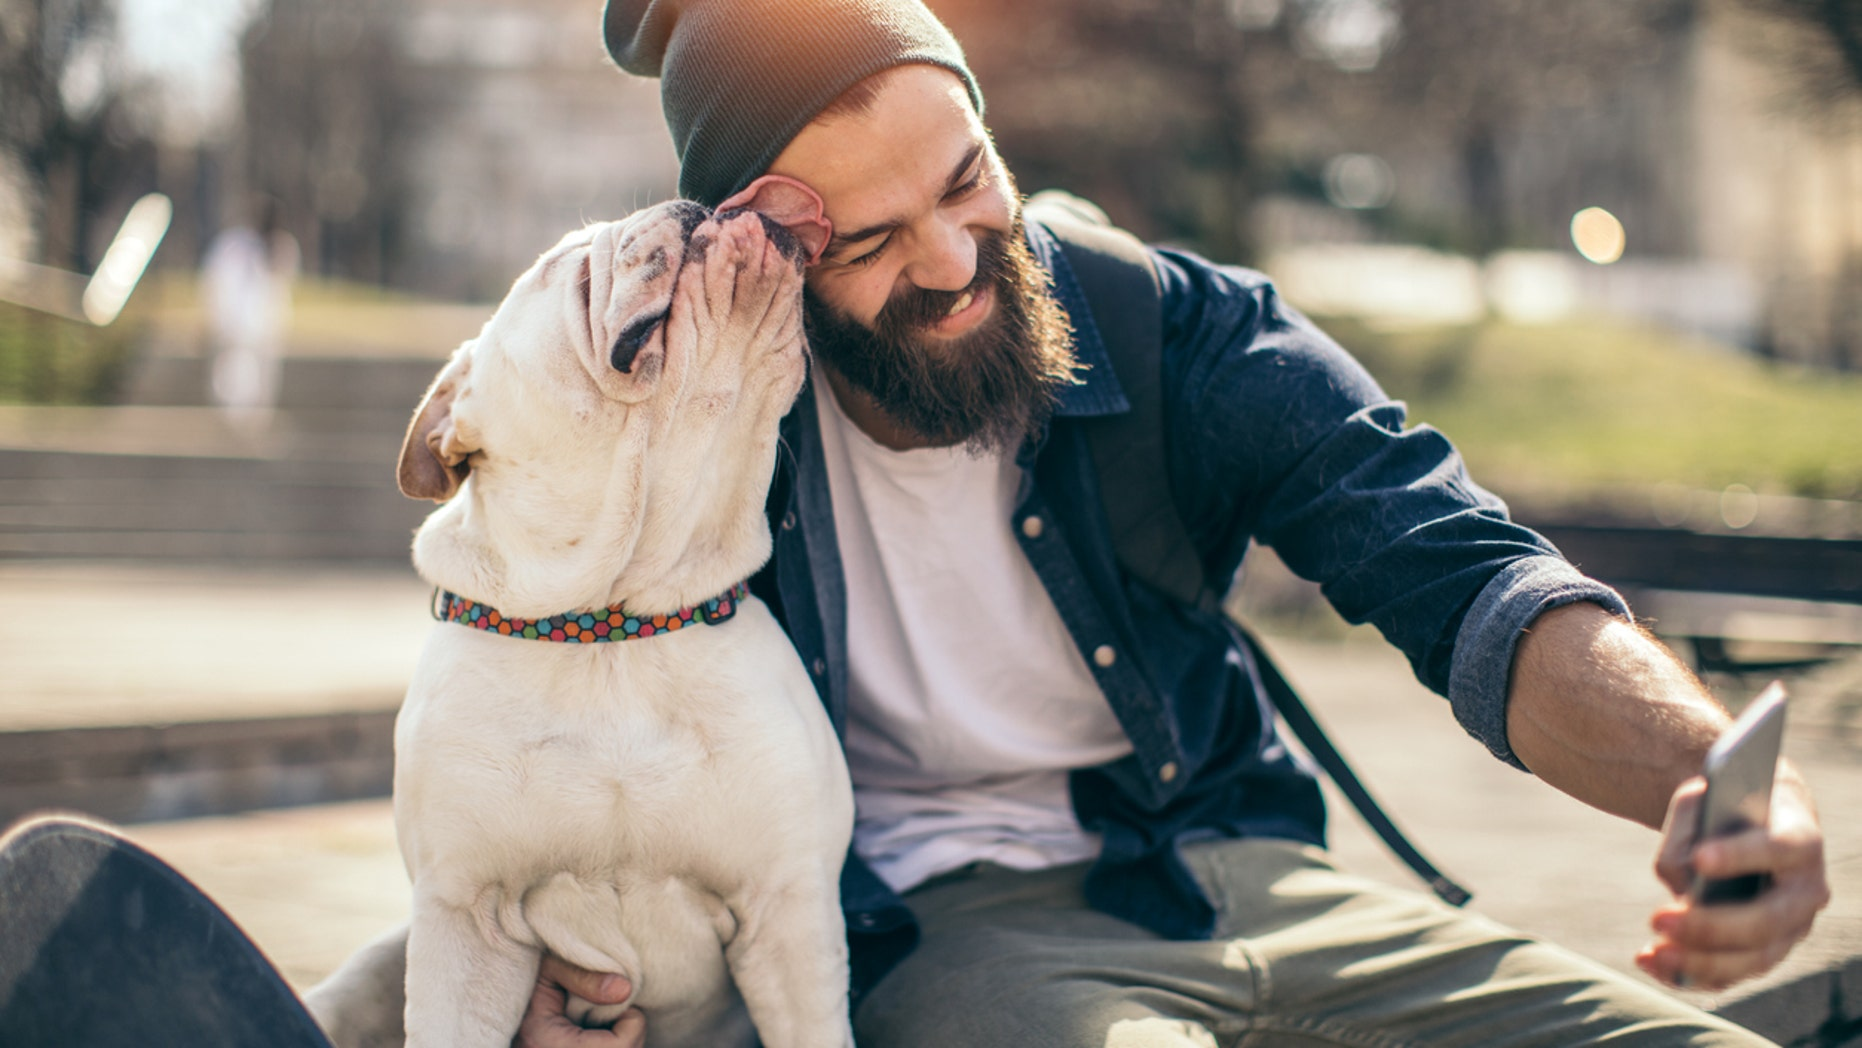 Men with beards are 'dirtier than dogs'